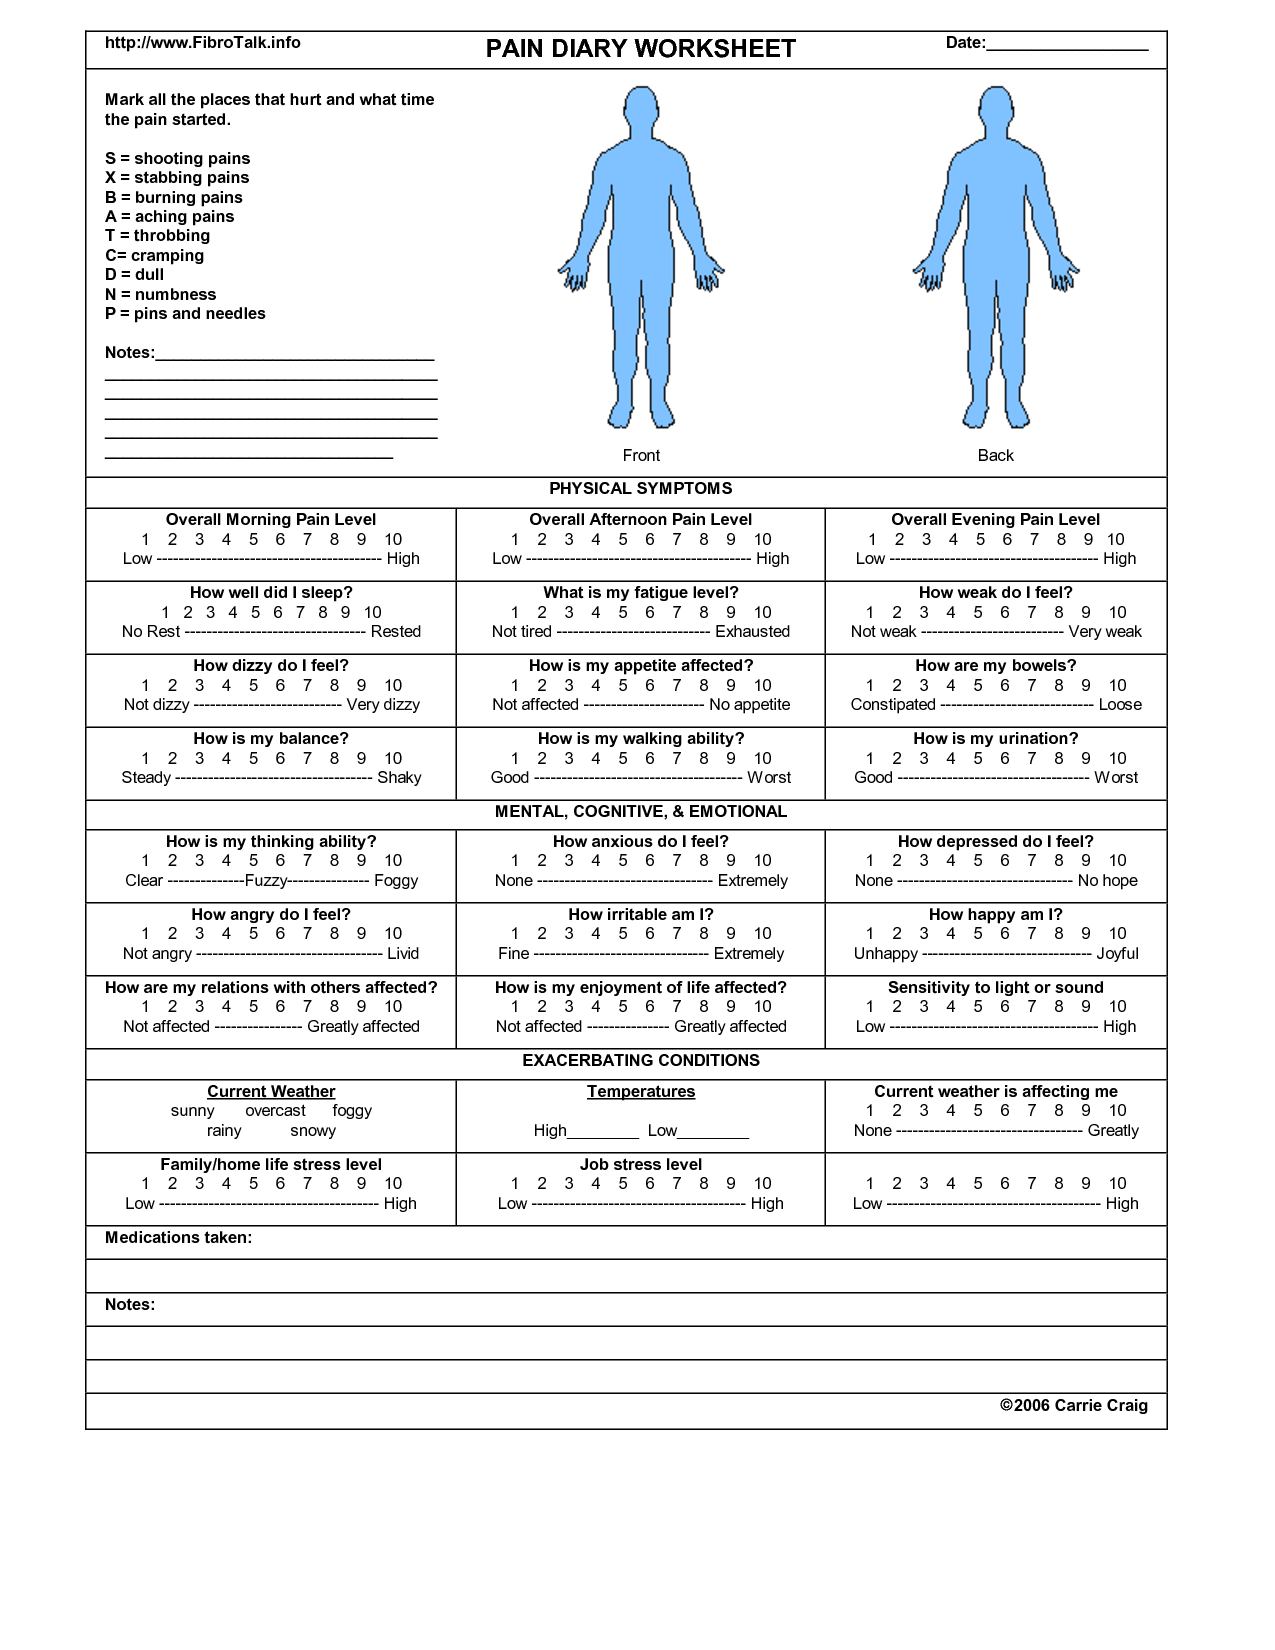 Pain Diary Worksheet